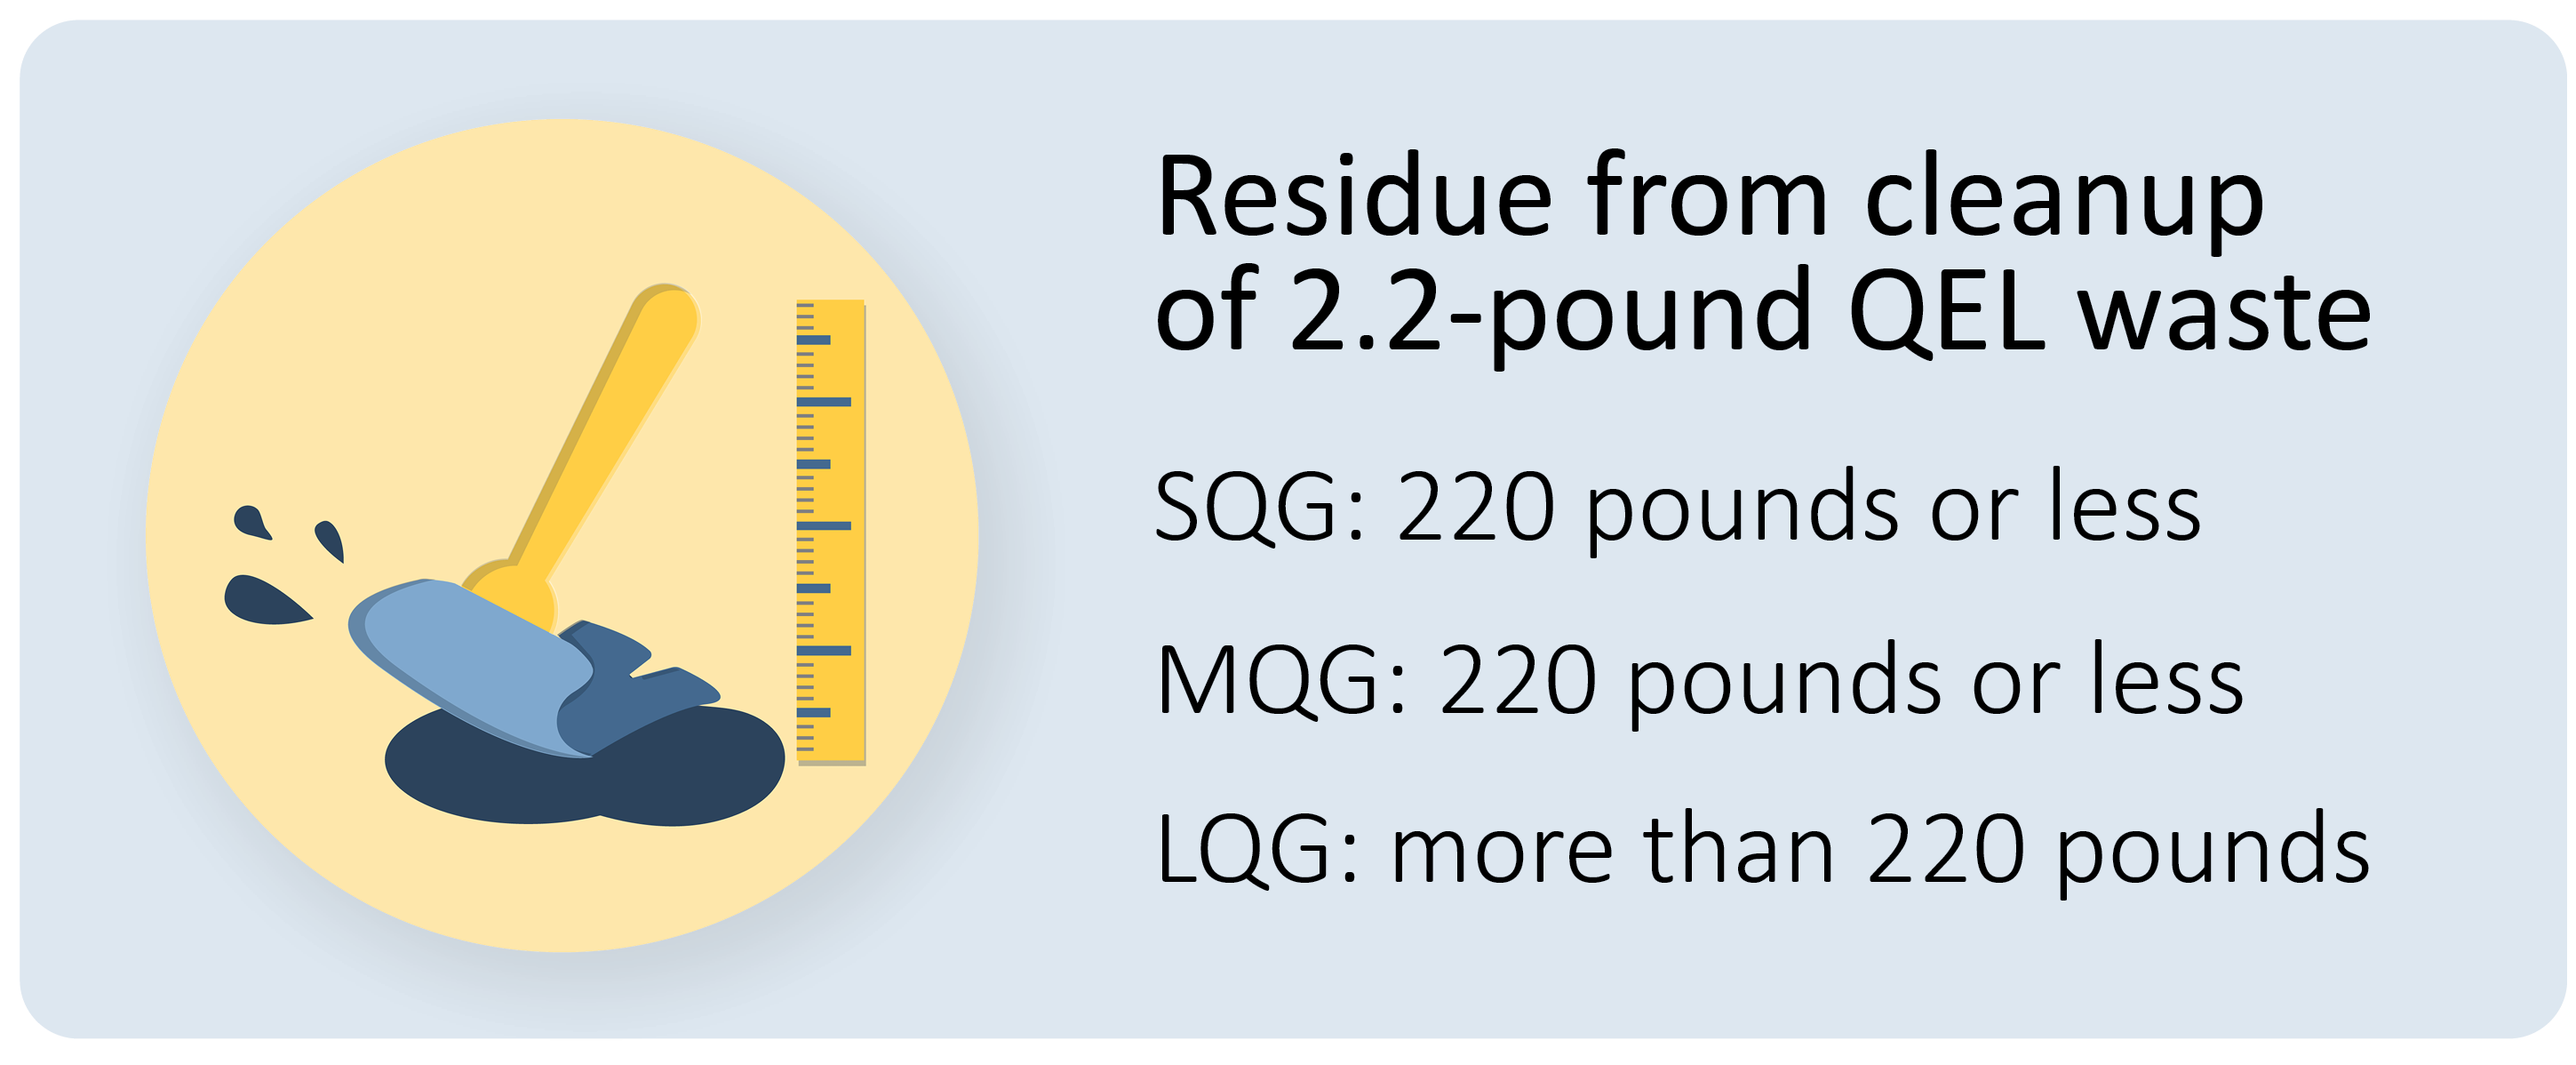 For cleanups of 2.2 QEL waste, if you generate over 220 pounds, you are a large quantity generator.